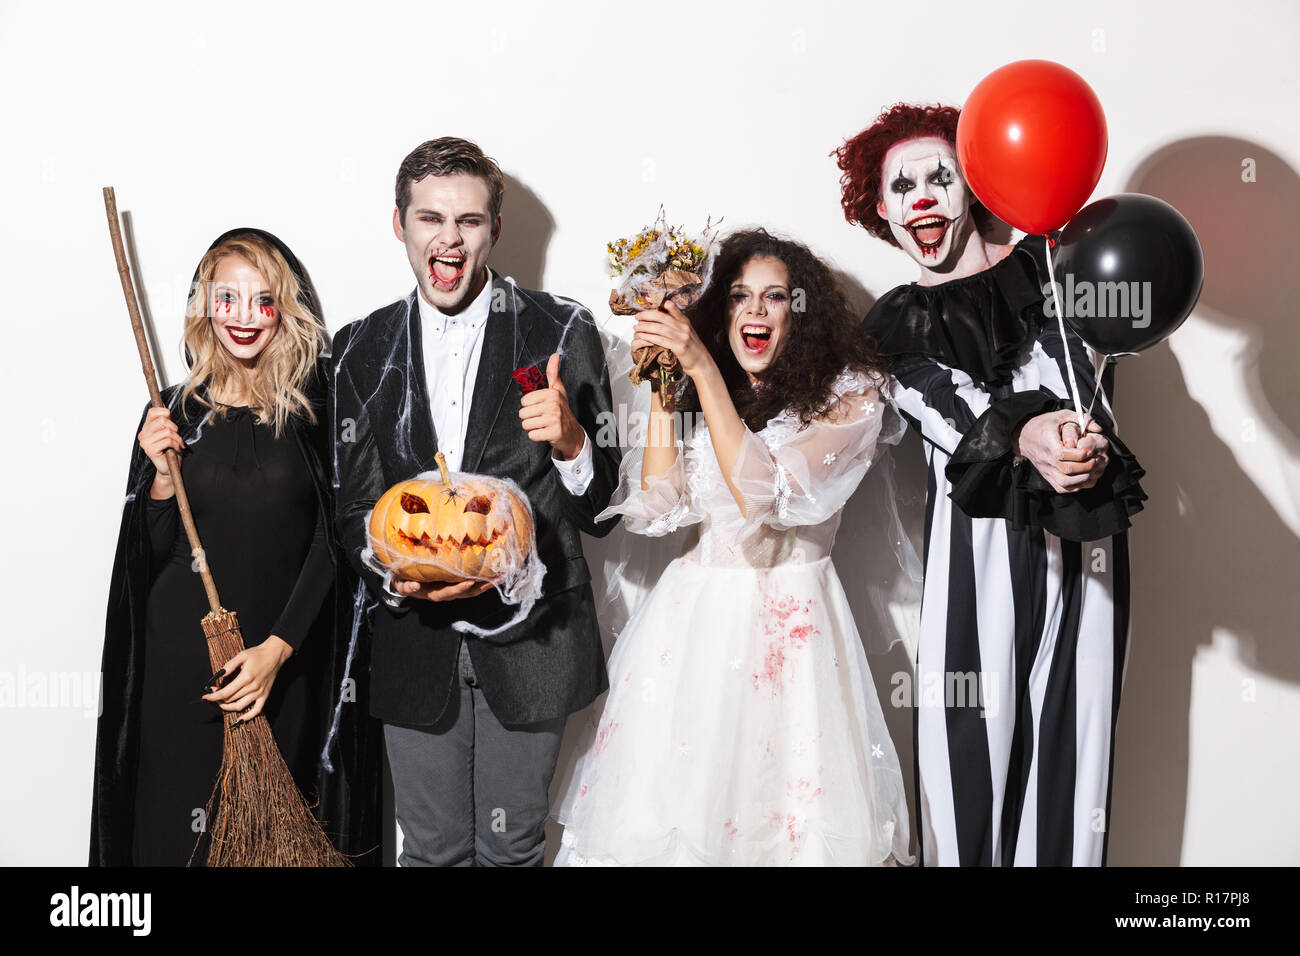 Halloween Group Costumes Scary.Group Of Joyful Friends Dressed In Scary Costumes